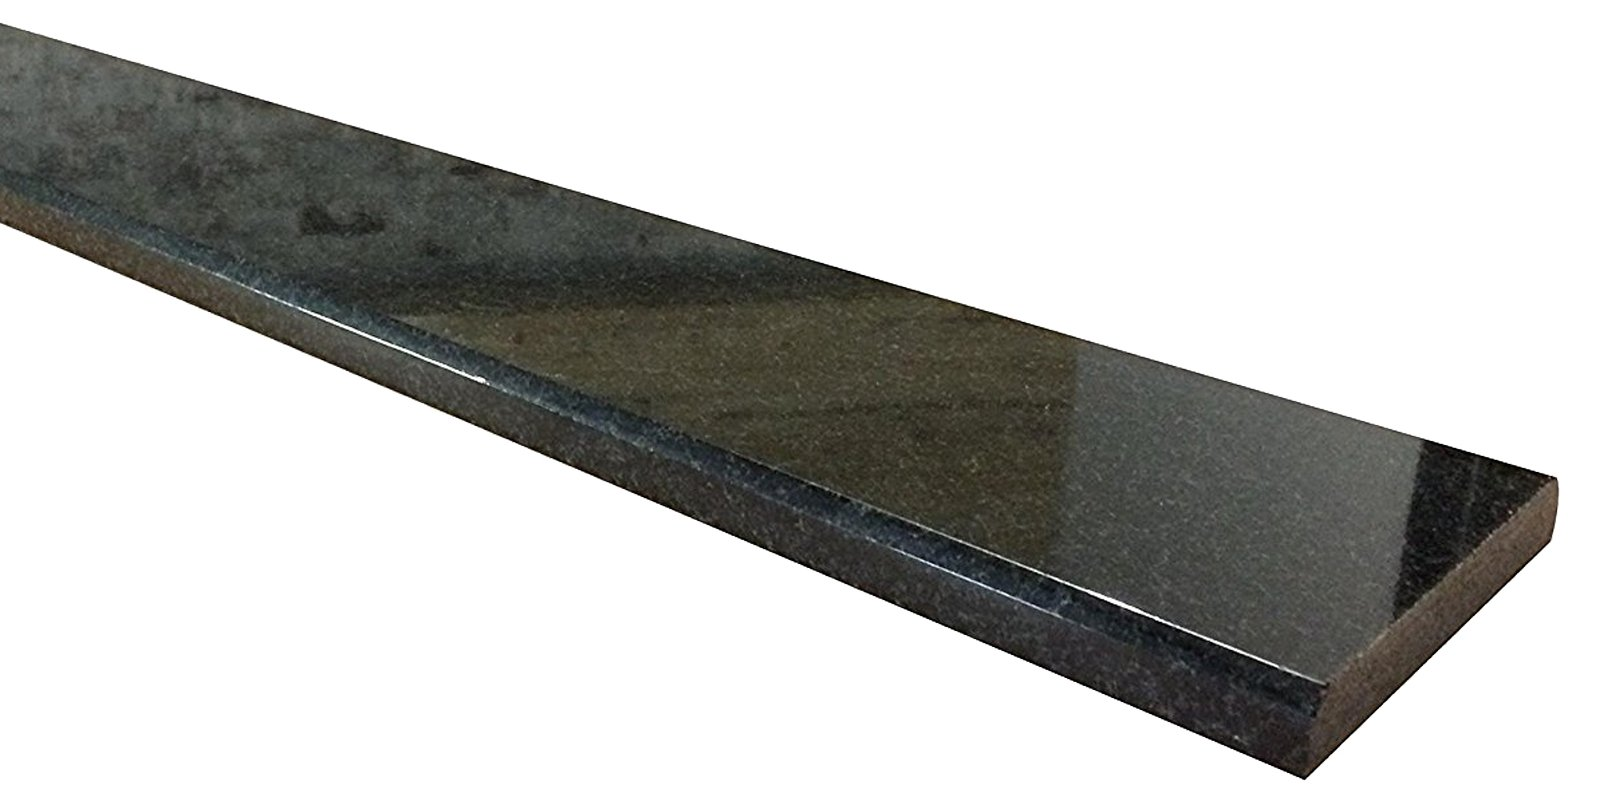 Vogue Tile Absolute Black Marble Granite Threshold (Marble Saddle) - Polished - (5'' x 36'')